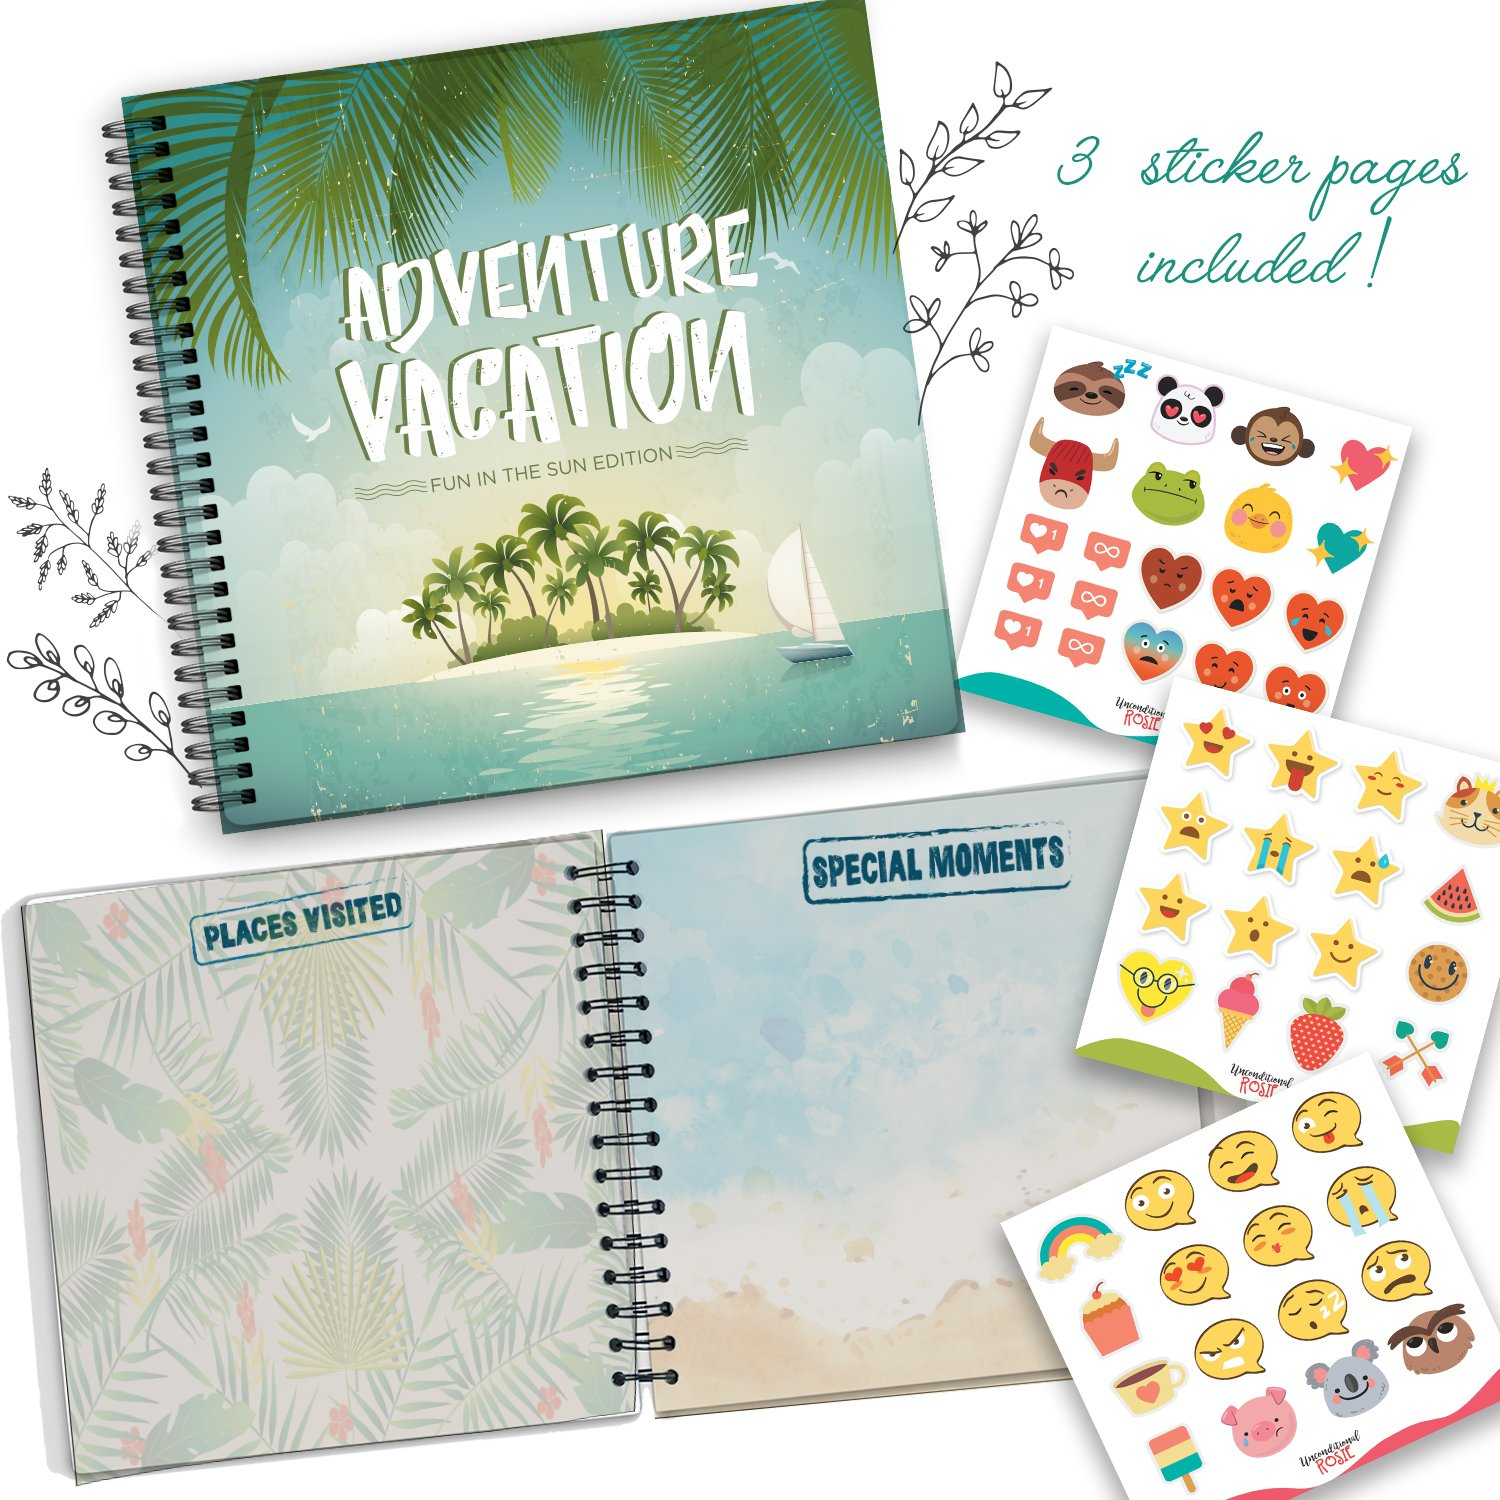 5 Second Hardcover Travel Journal Fun in The Sun Edition to Remember and Record All Your Memories and Photos in a Fun and Unique Way Memory Book and Photo Album - 24 Beautiful Pages and Stickers by Unconditional Rosie